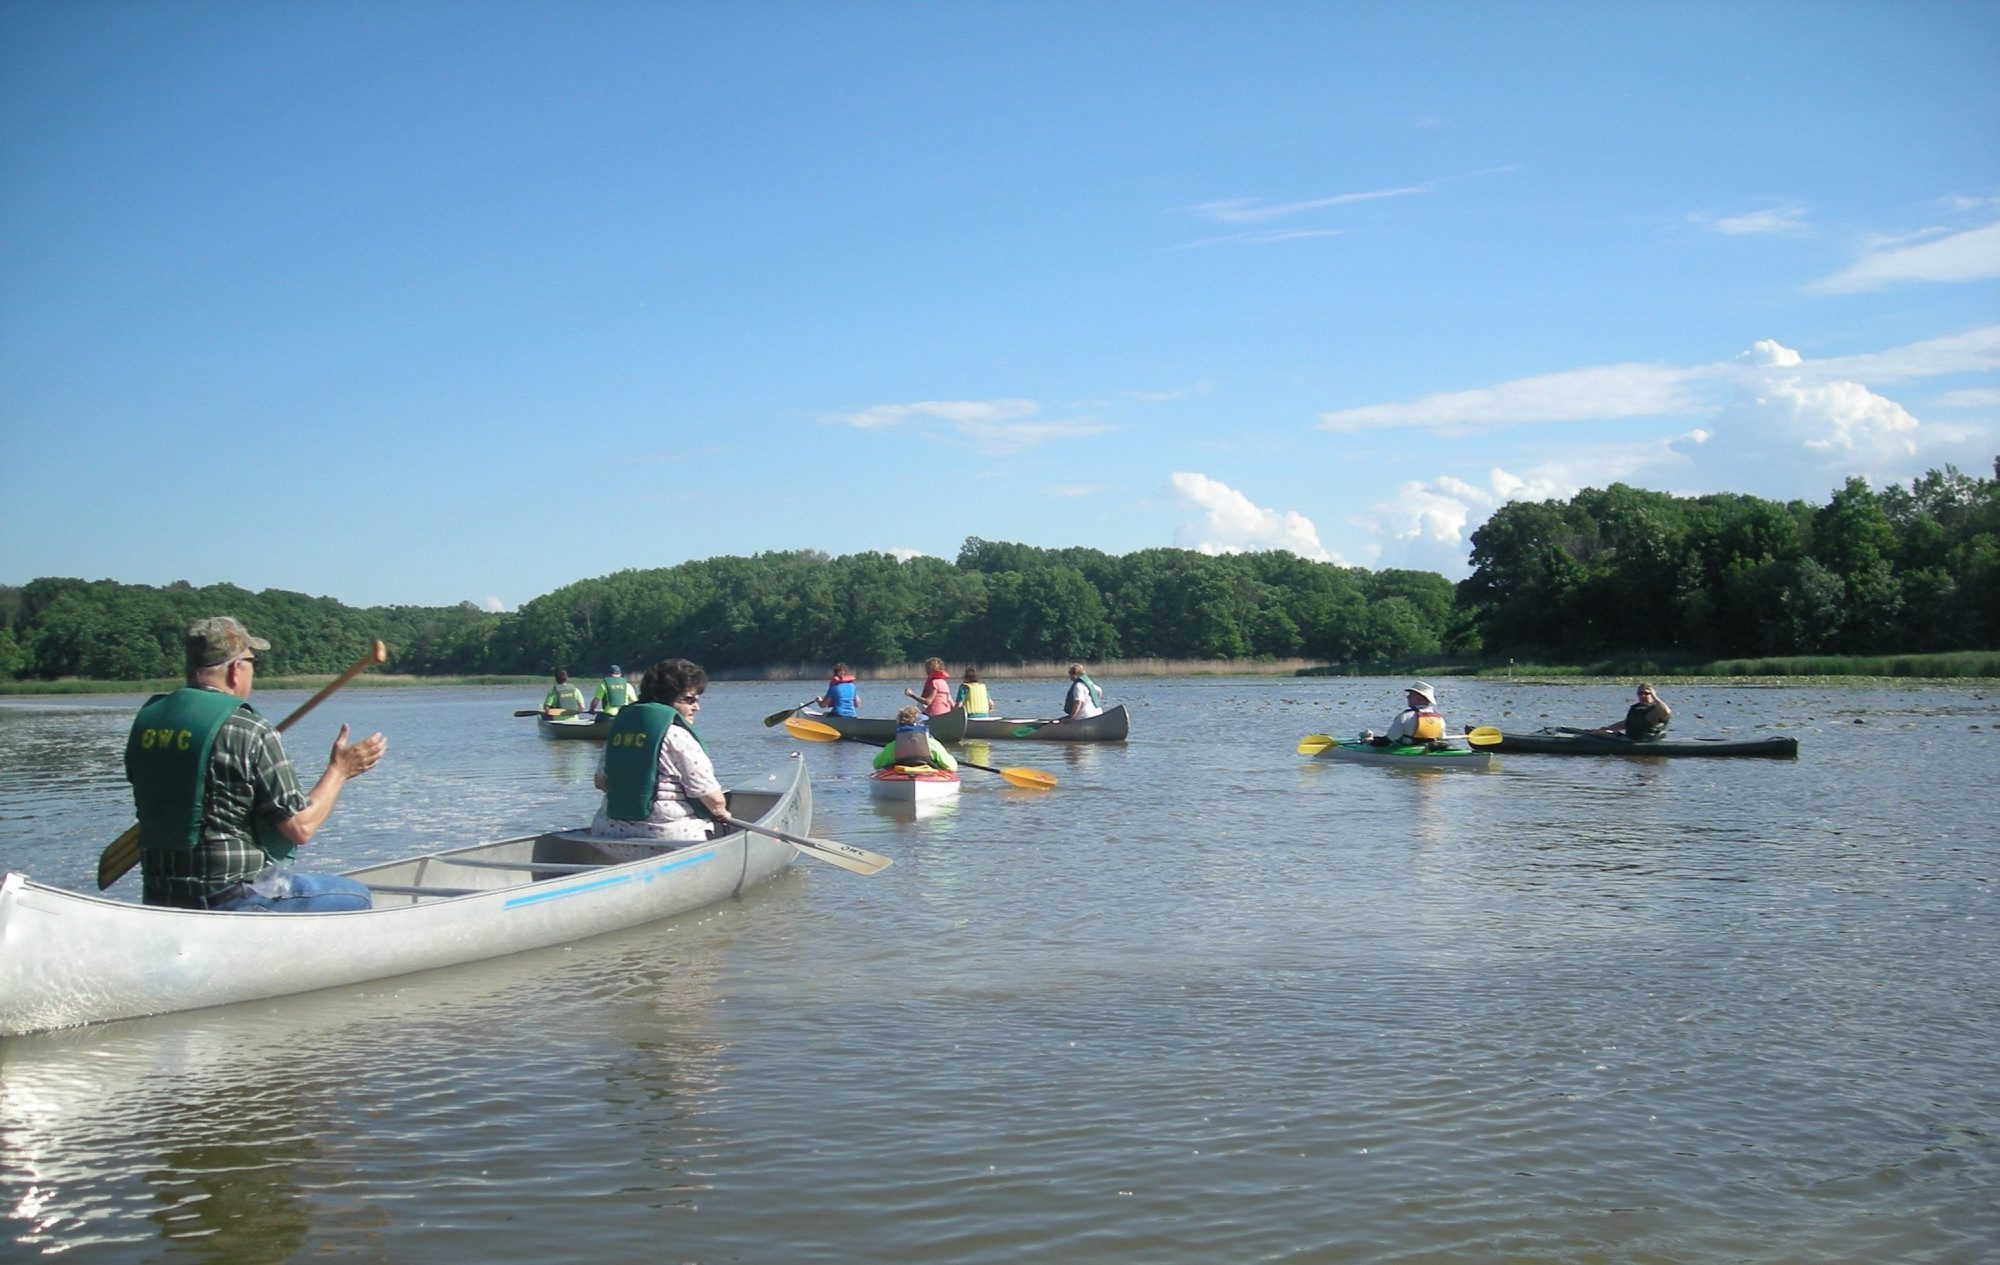 Canoes and kayaks are paddled through Old Woman Creek'se estuary and up the small creek near Huron in north-central Ohio. The put-in spot is near Lake Erie and a wild beach. (Bob Downing/Akron Beacon Journal/MCT)